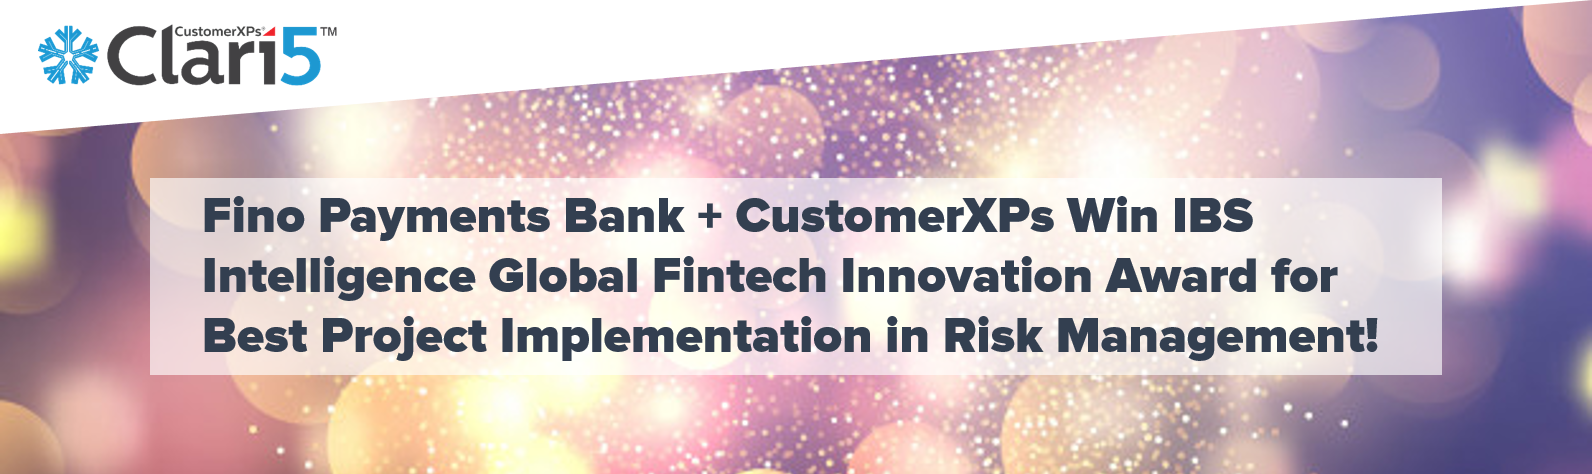 Fino Payments Bank & CustomerXPs Win IBS Intelligence Global Fintech Innovation Award for Best Project Implementation in Risk Management